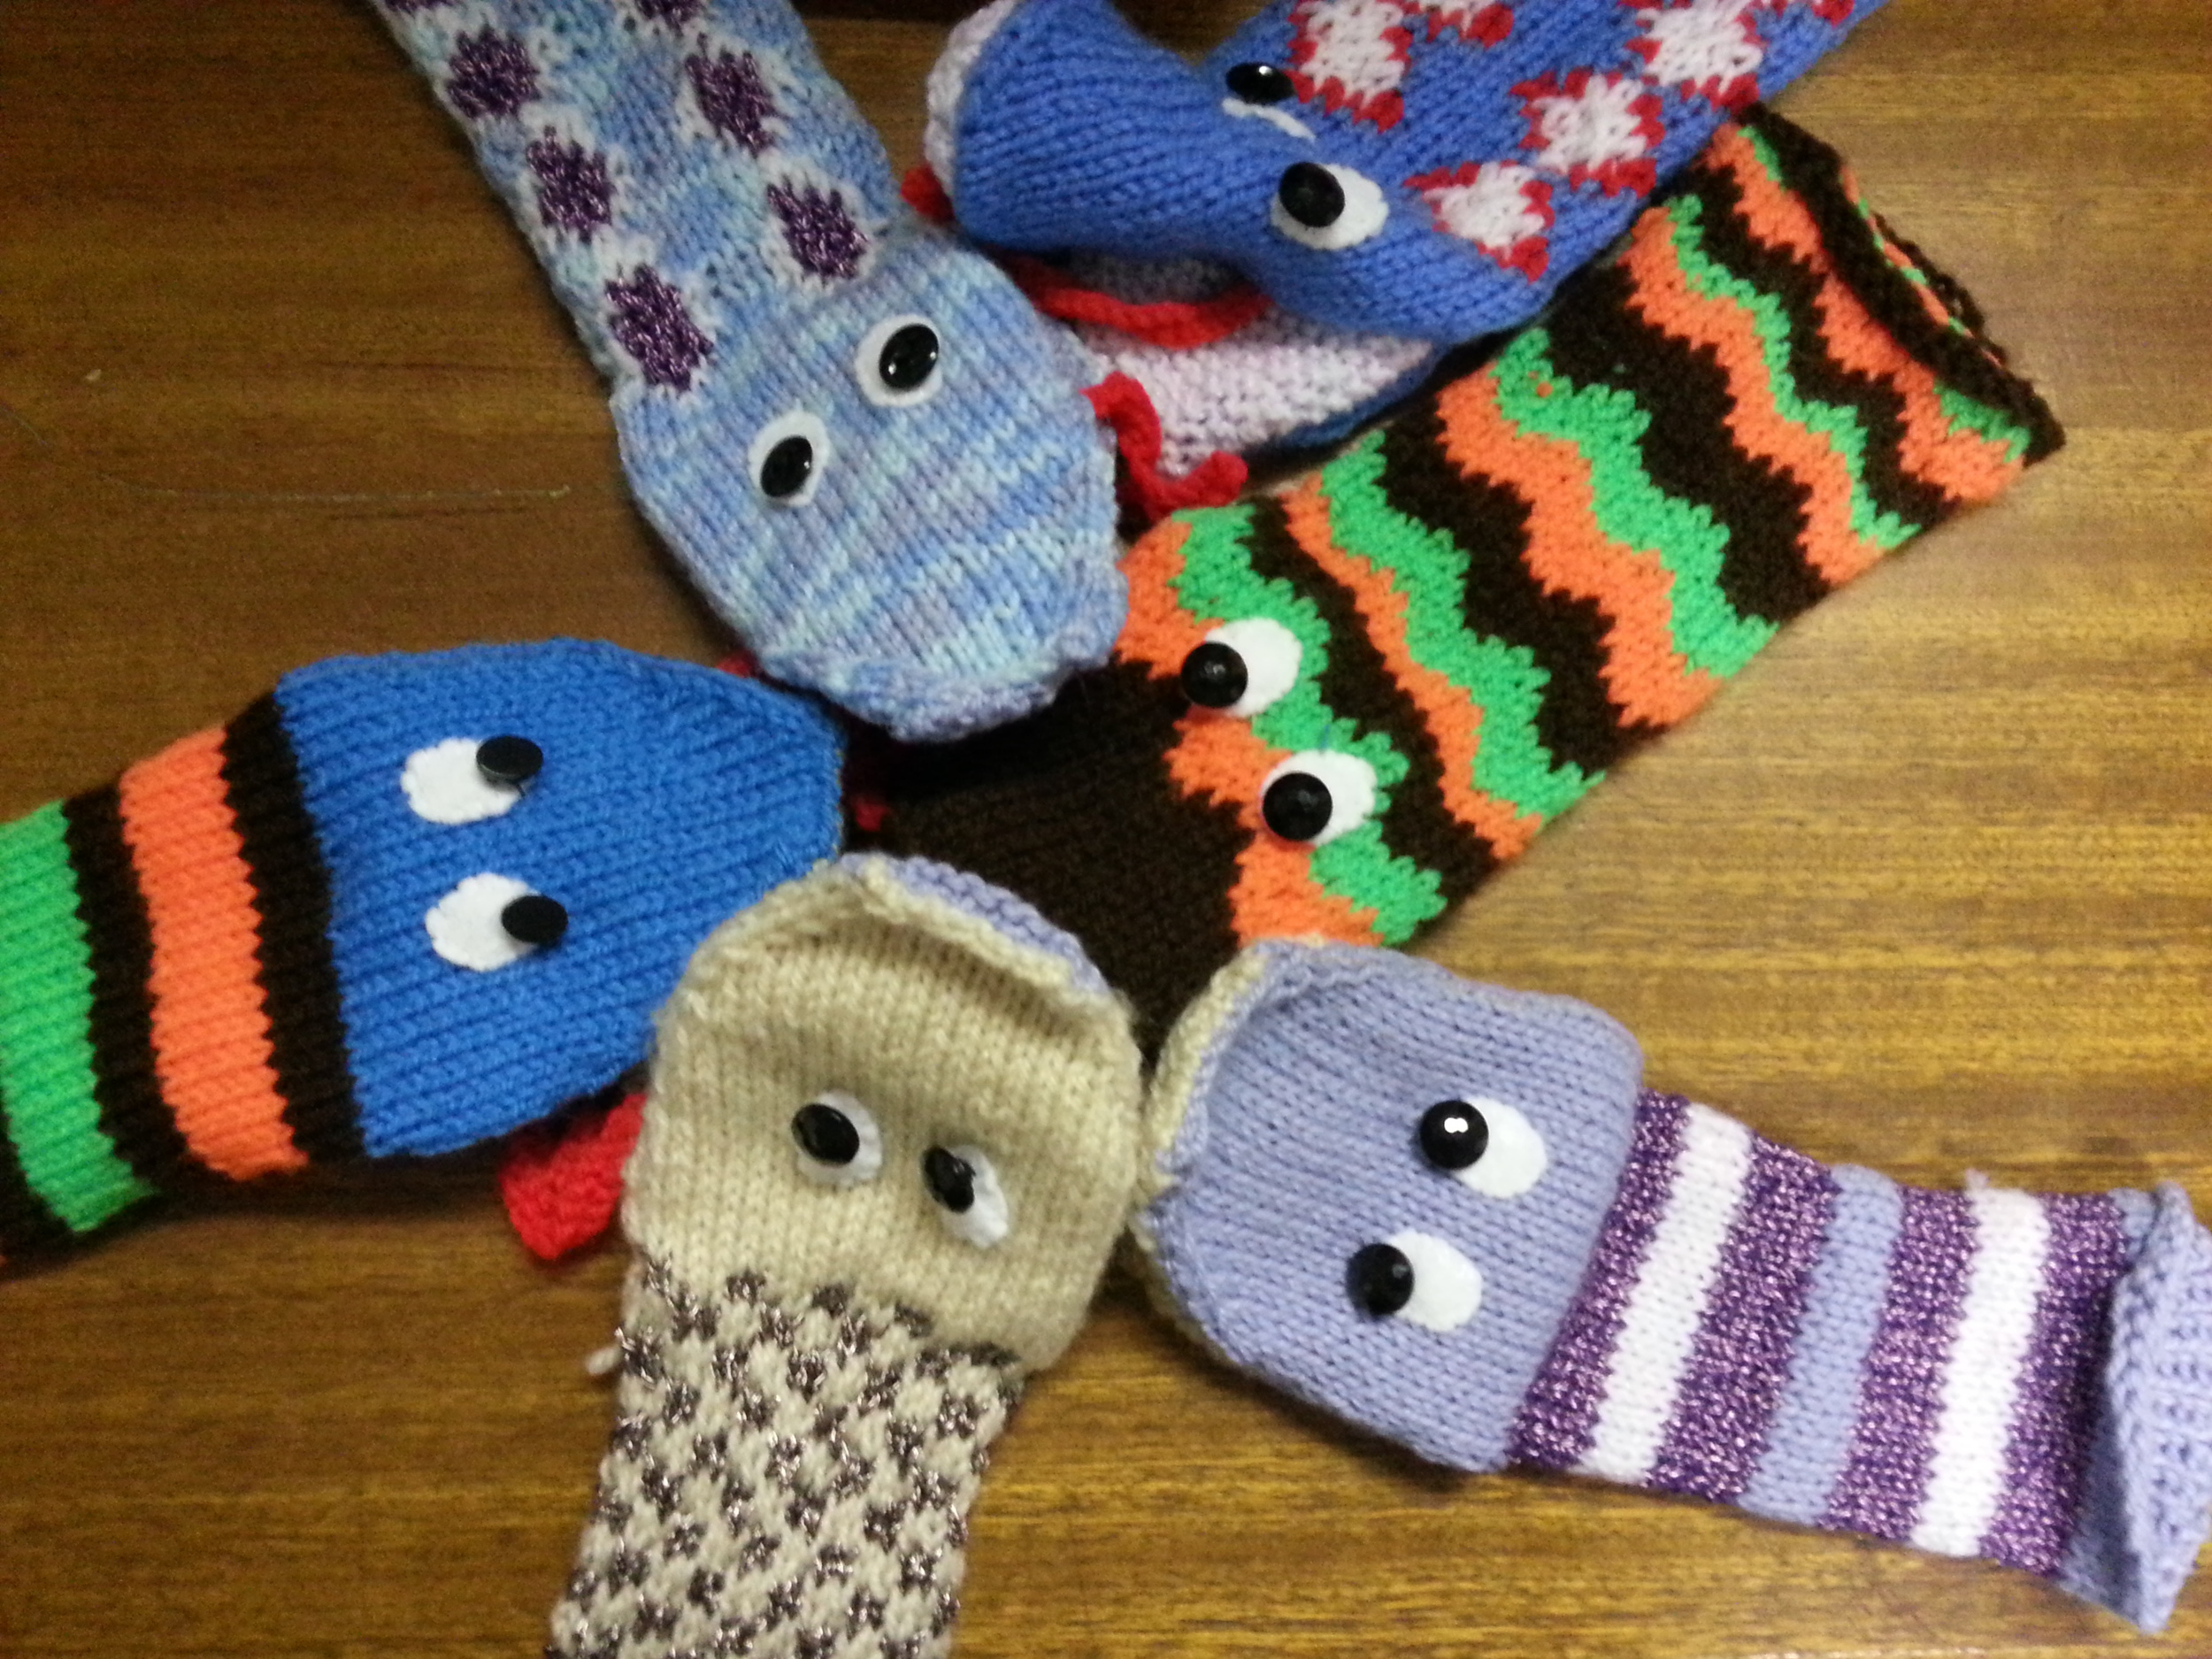 Sock puppets knitted for children in Nigeria